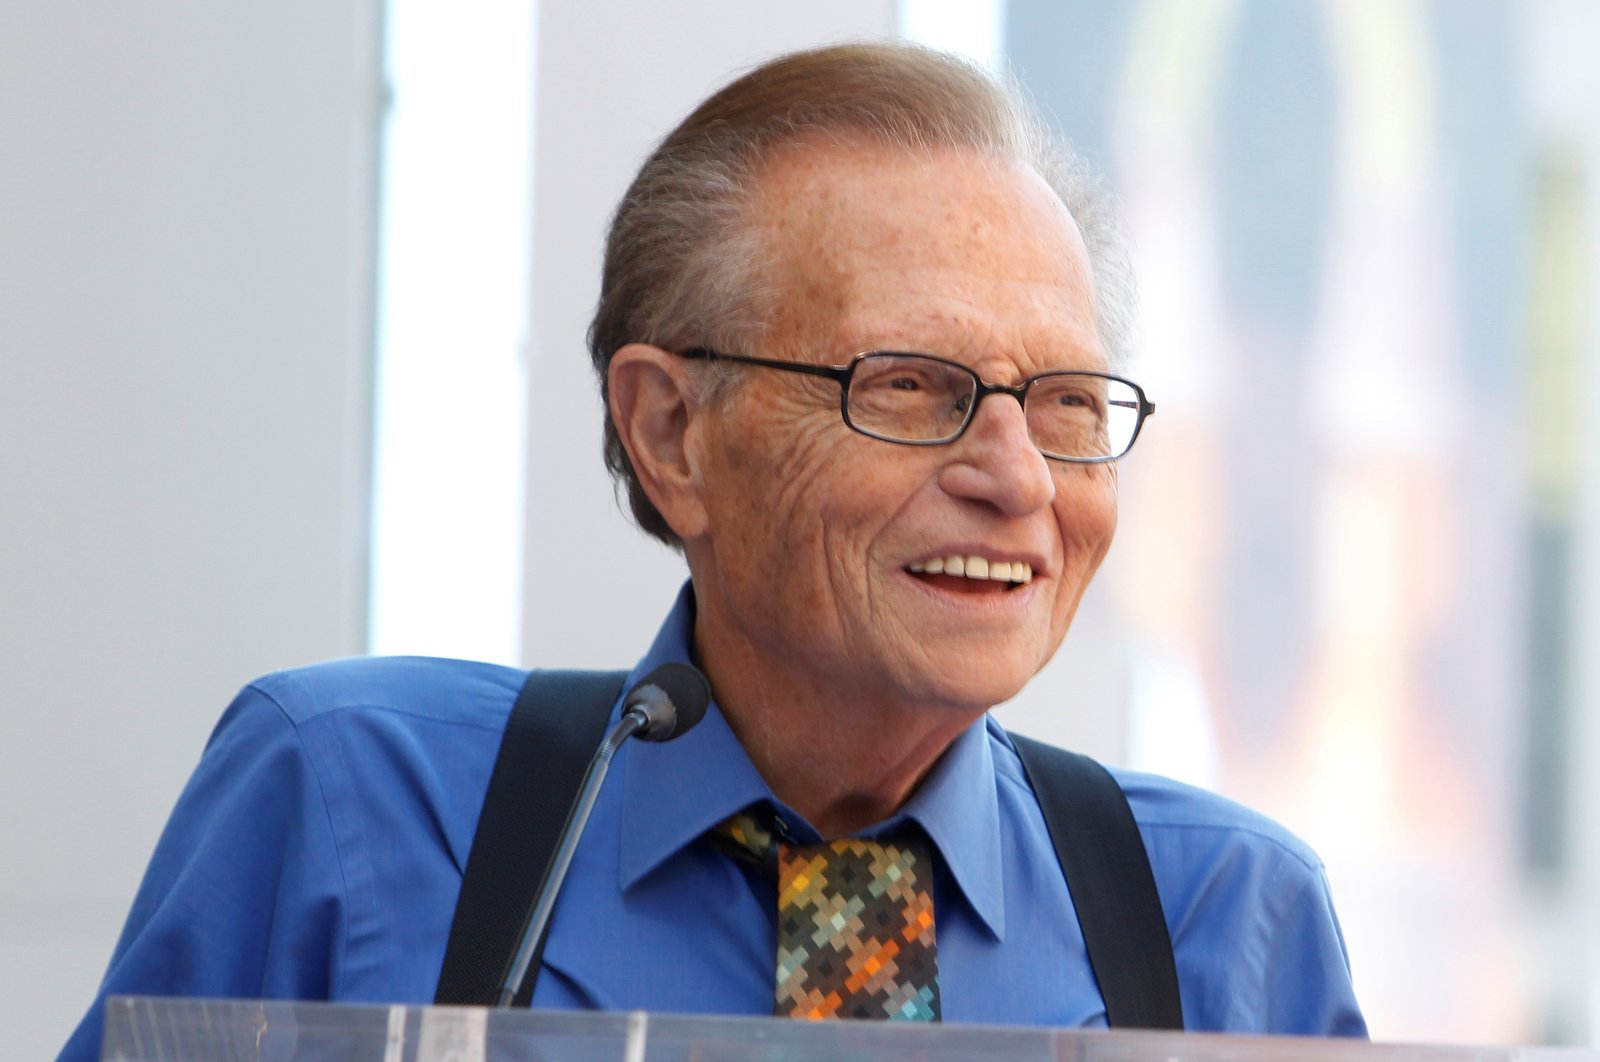 Larry King speaks at ceremonies unveiling comedian Bill Maher's star on the Hollywood Walk of Fame in Hollywood, California, Sept. 14, 2010. (Reuters Photo)